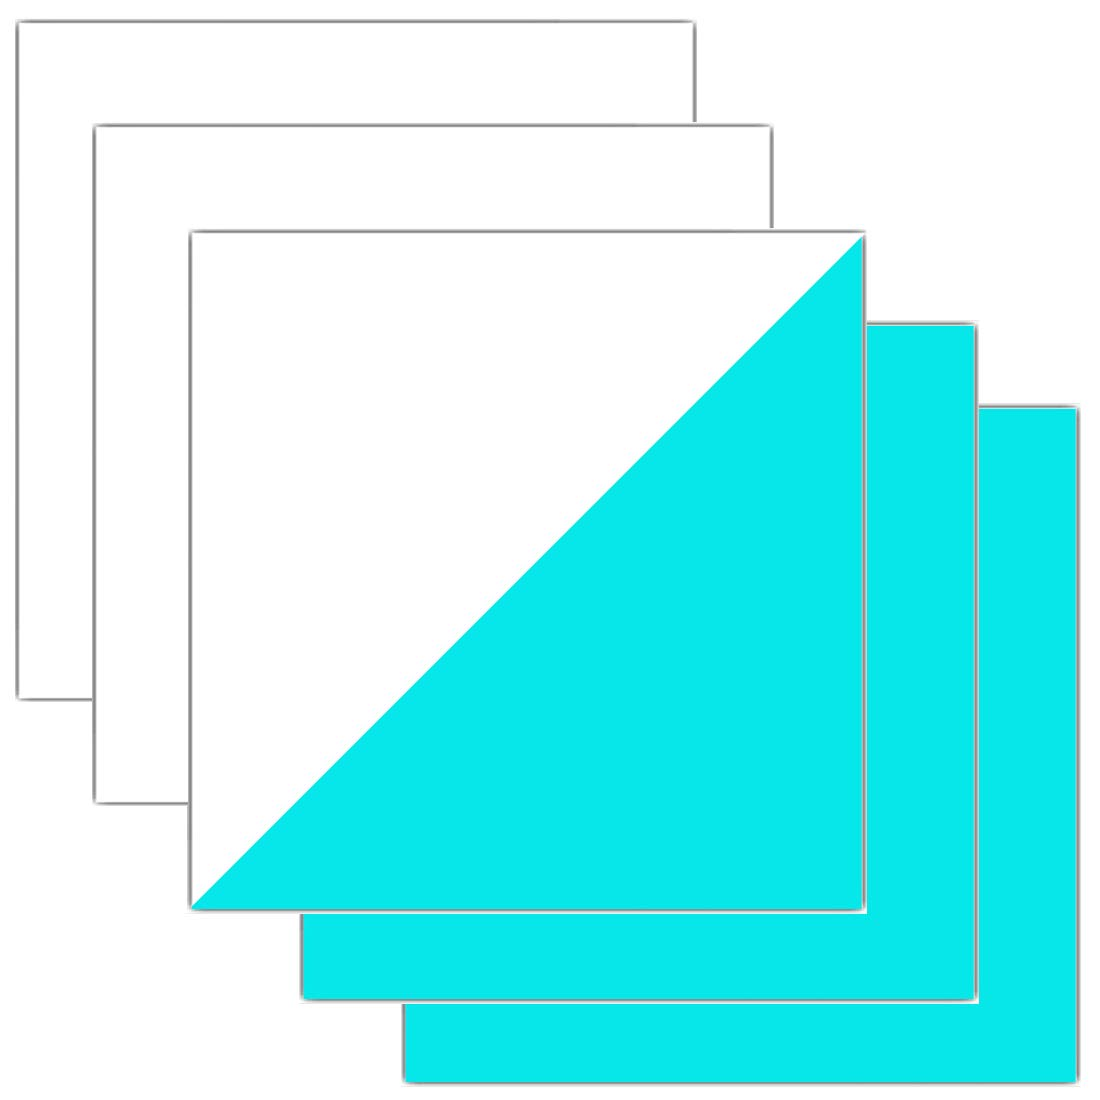 Glow in Dark HTV Sheets Iron-on Heat Transfer Vinyl for T-Shirts Apparel 12 Inches x 12 Inches Pack of 5 (Blue) ZELIN 4337030076